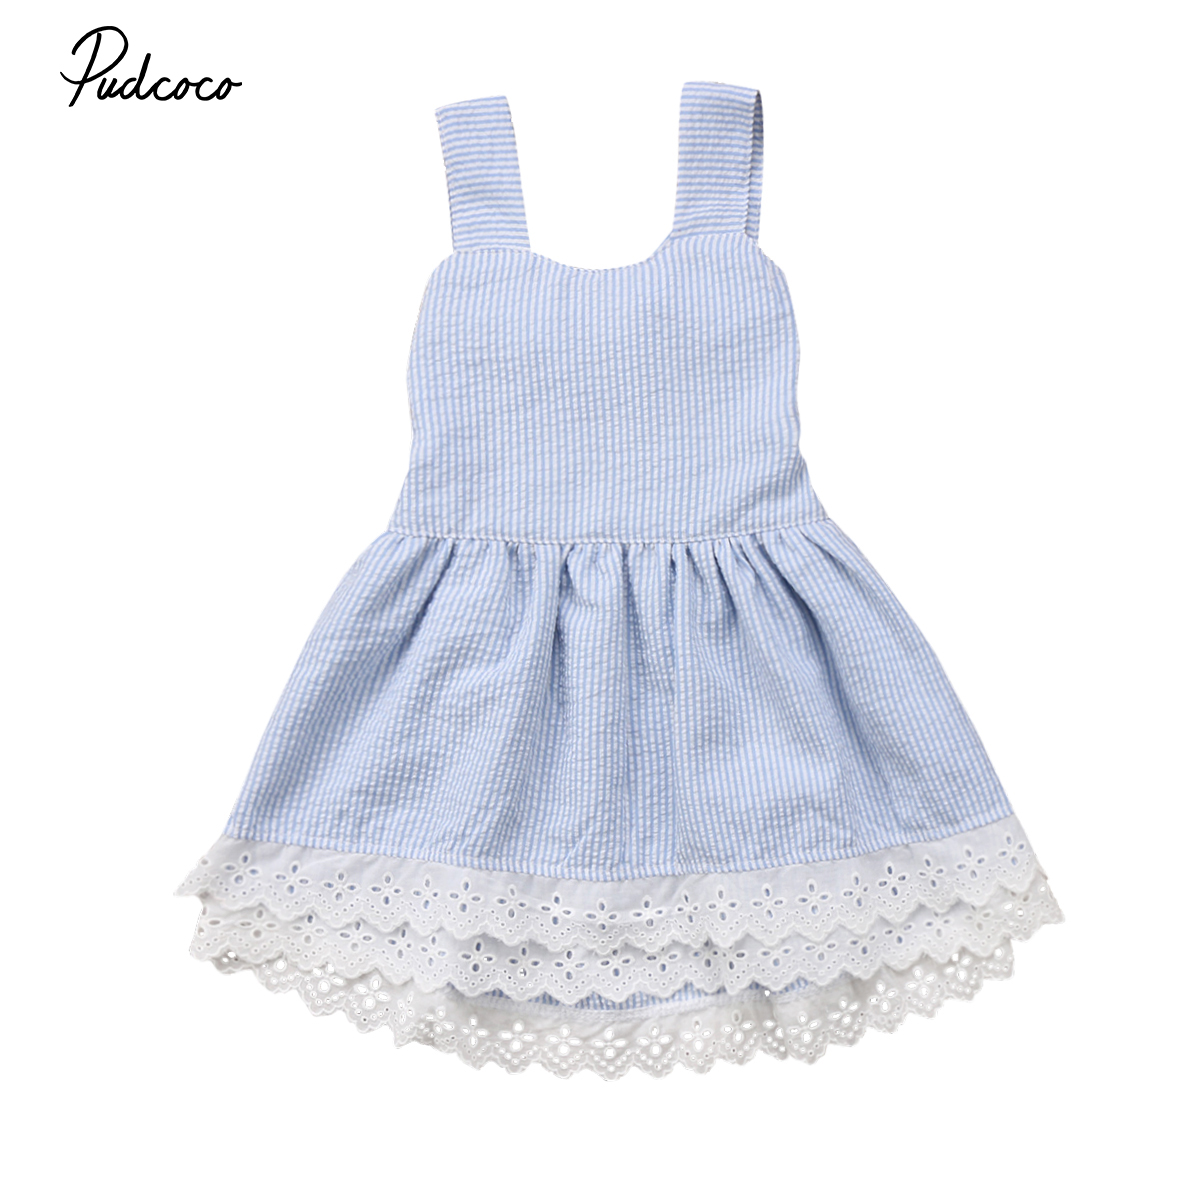 New Toddler Baby Dress Fashion Girl Tutu Princess Party Pageant Wedding Dresses